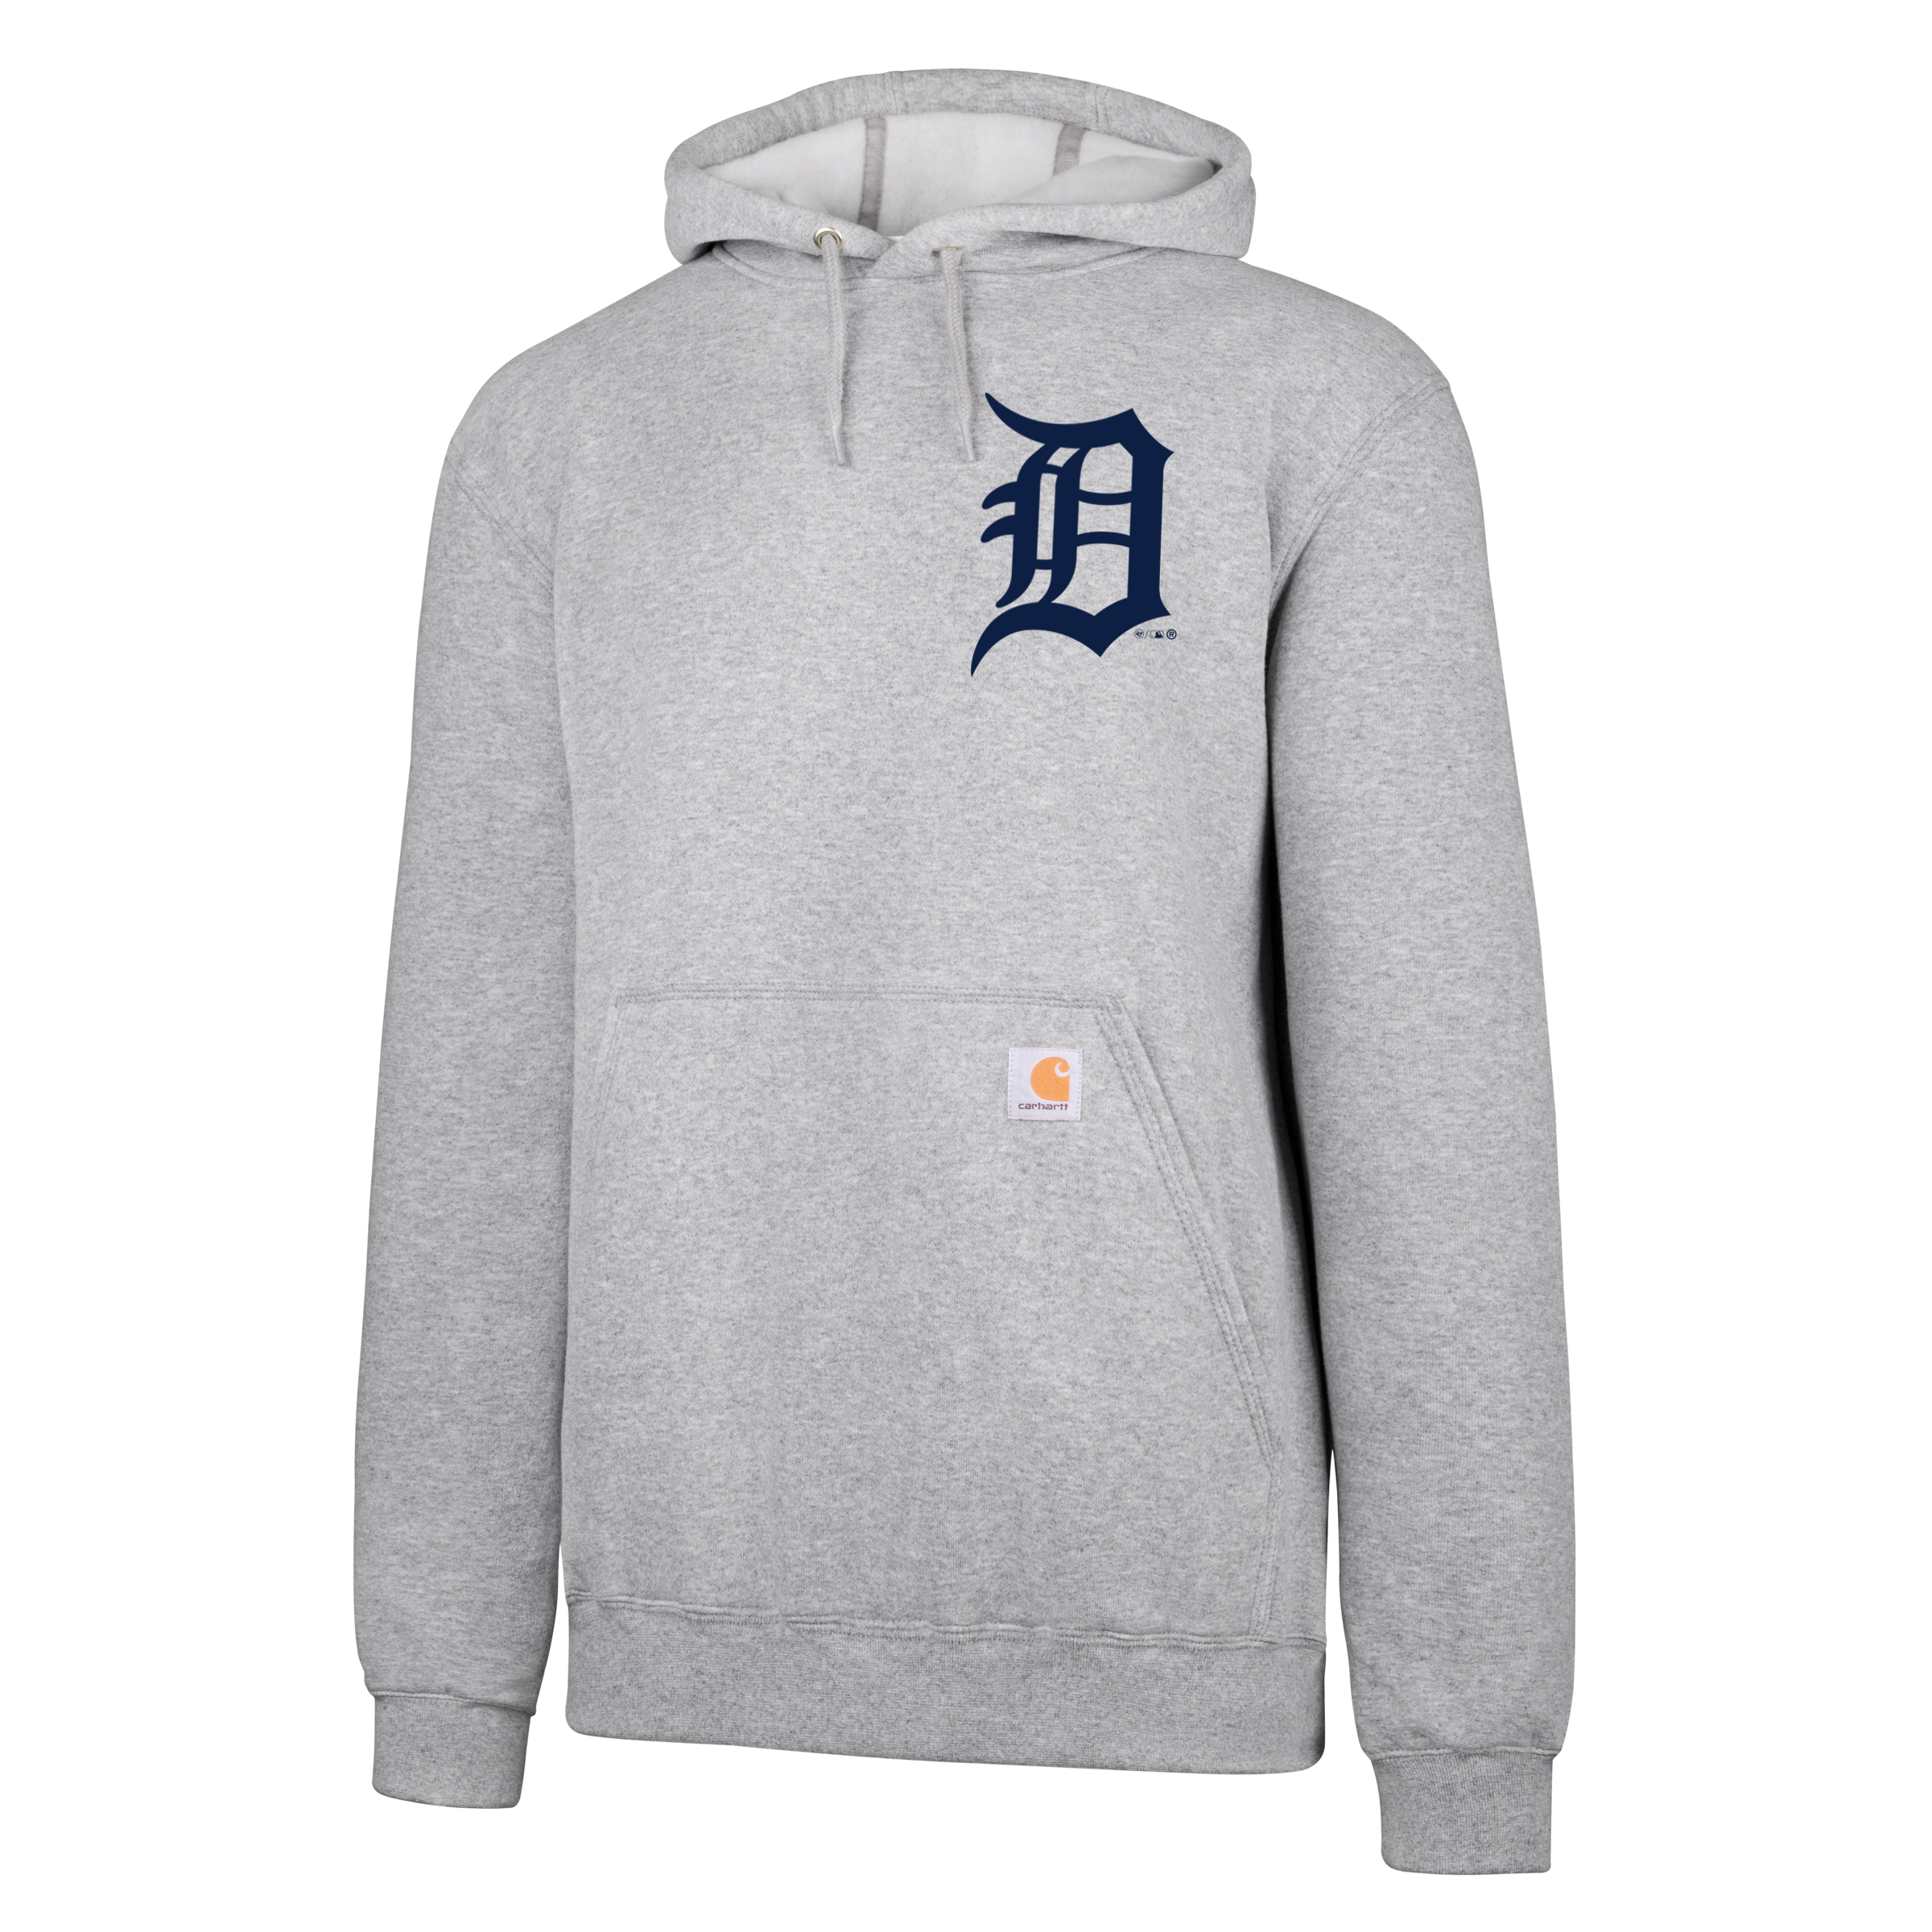 Carhartt and  47 Brand are creating a new Tigers collection - Bless ... 10ede34d0018